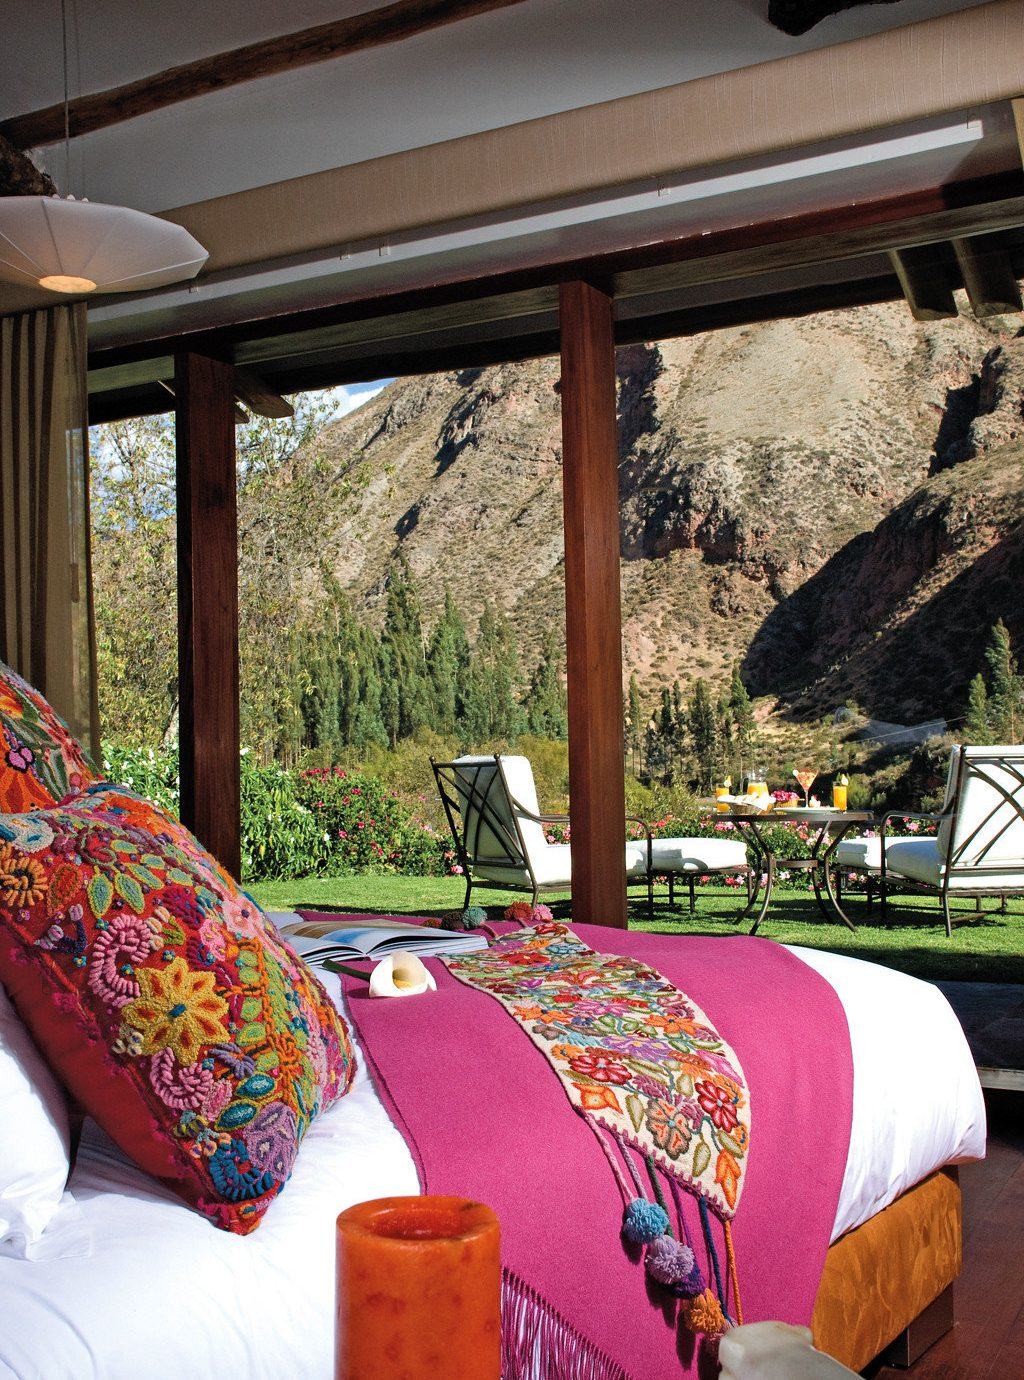 Bedroom Luxury Mountains Patio Scenic views Suite home porch cottage living room flower backyard